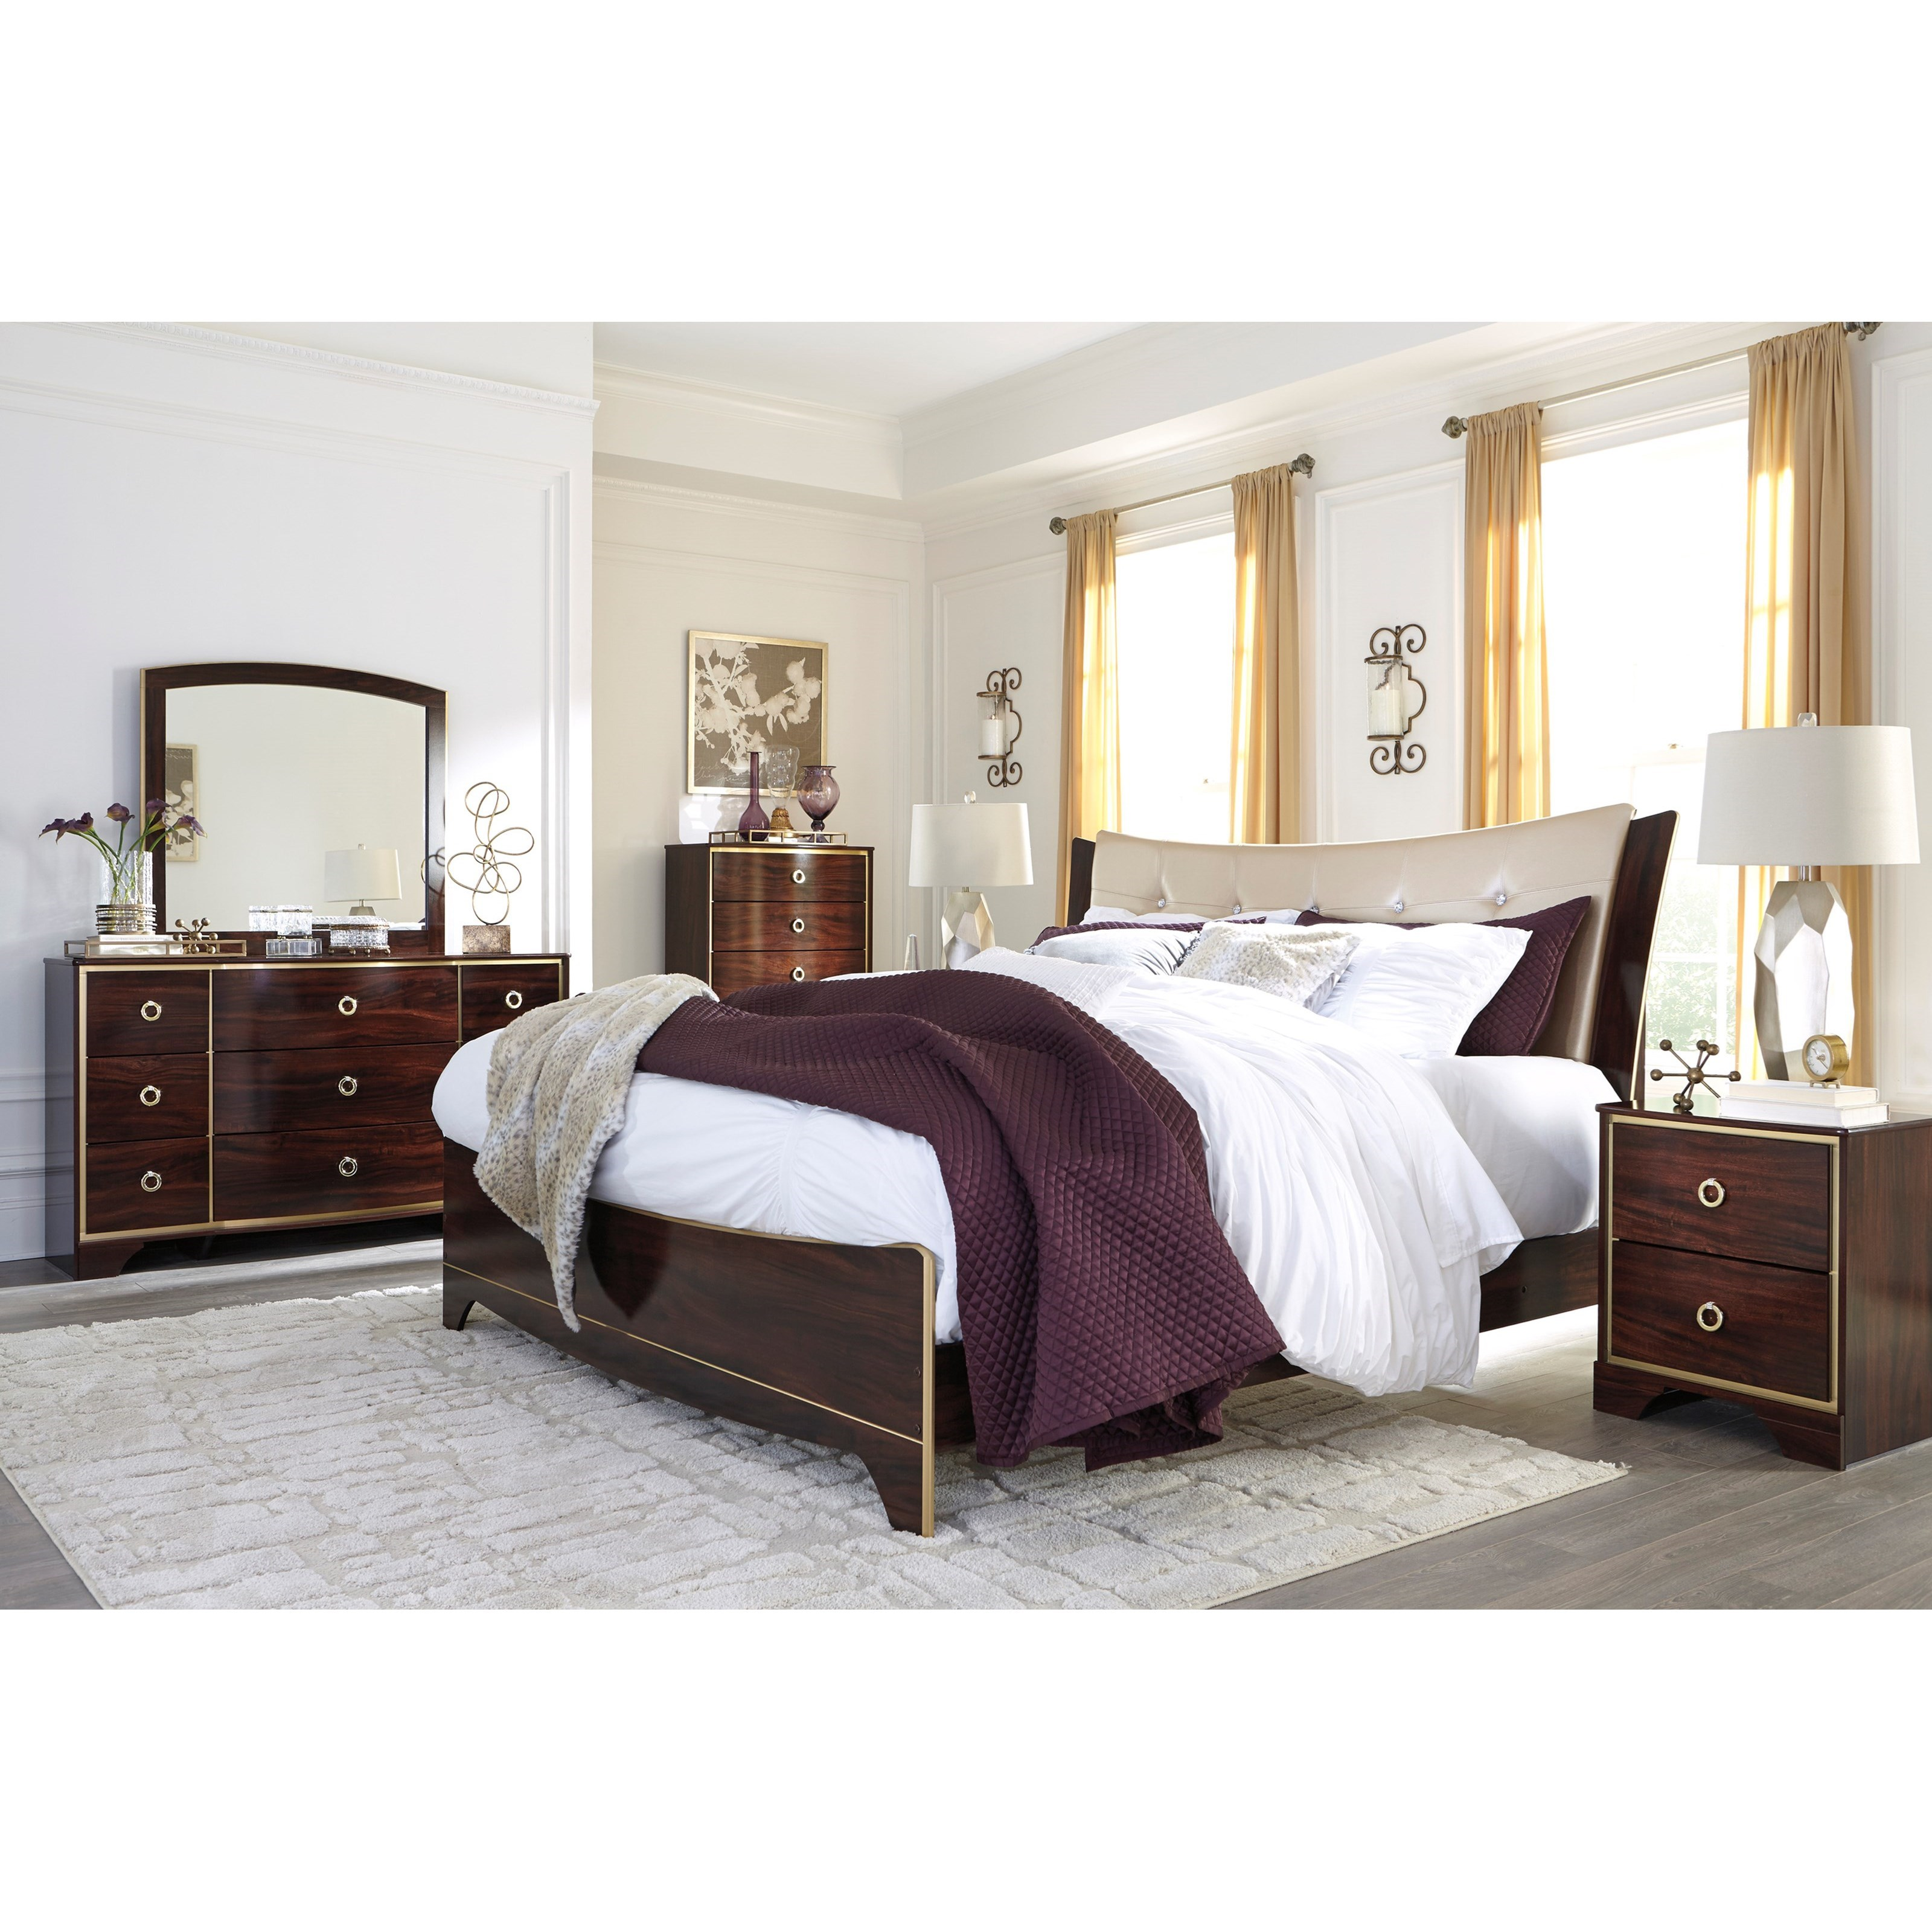 Signature Design by Ashley Lenmara King Bedroom Group - Item Number: B247 K Bedroom Group 2